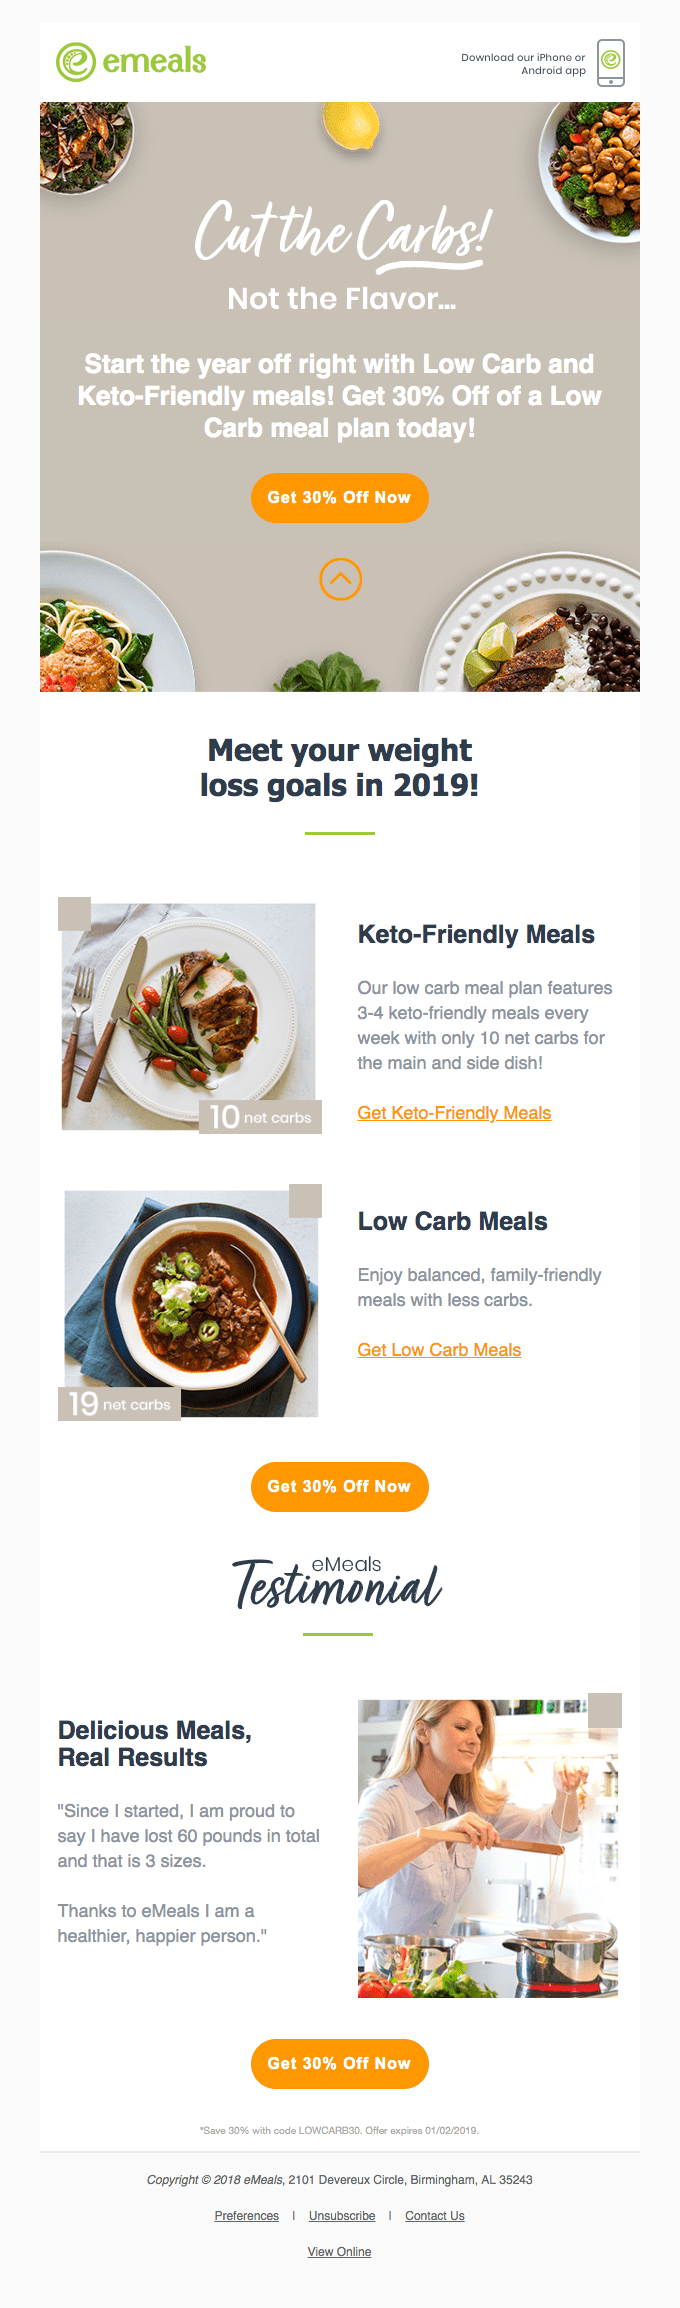 Tasty, Keto-Friendly and Low Carb Meals!